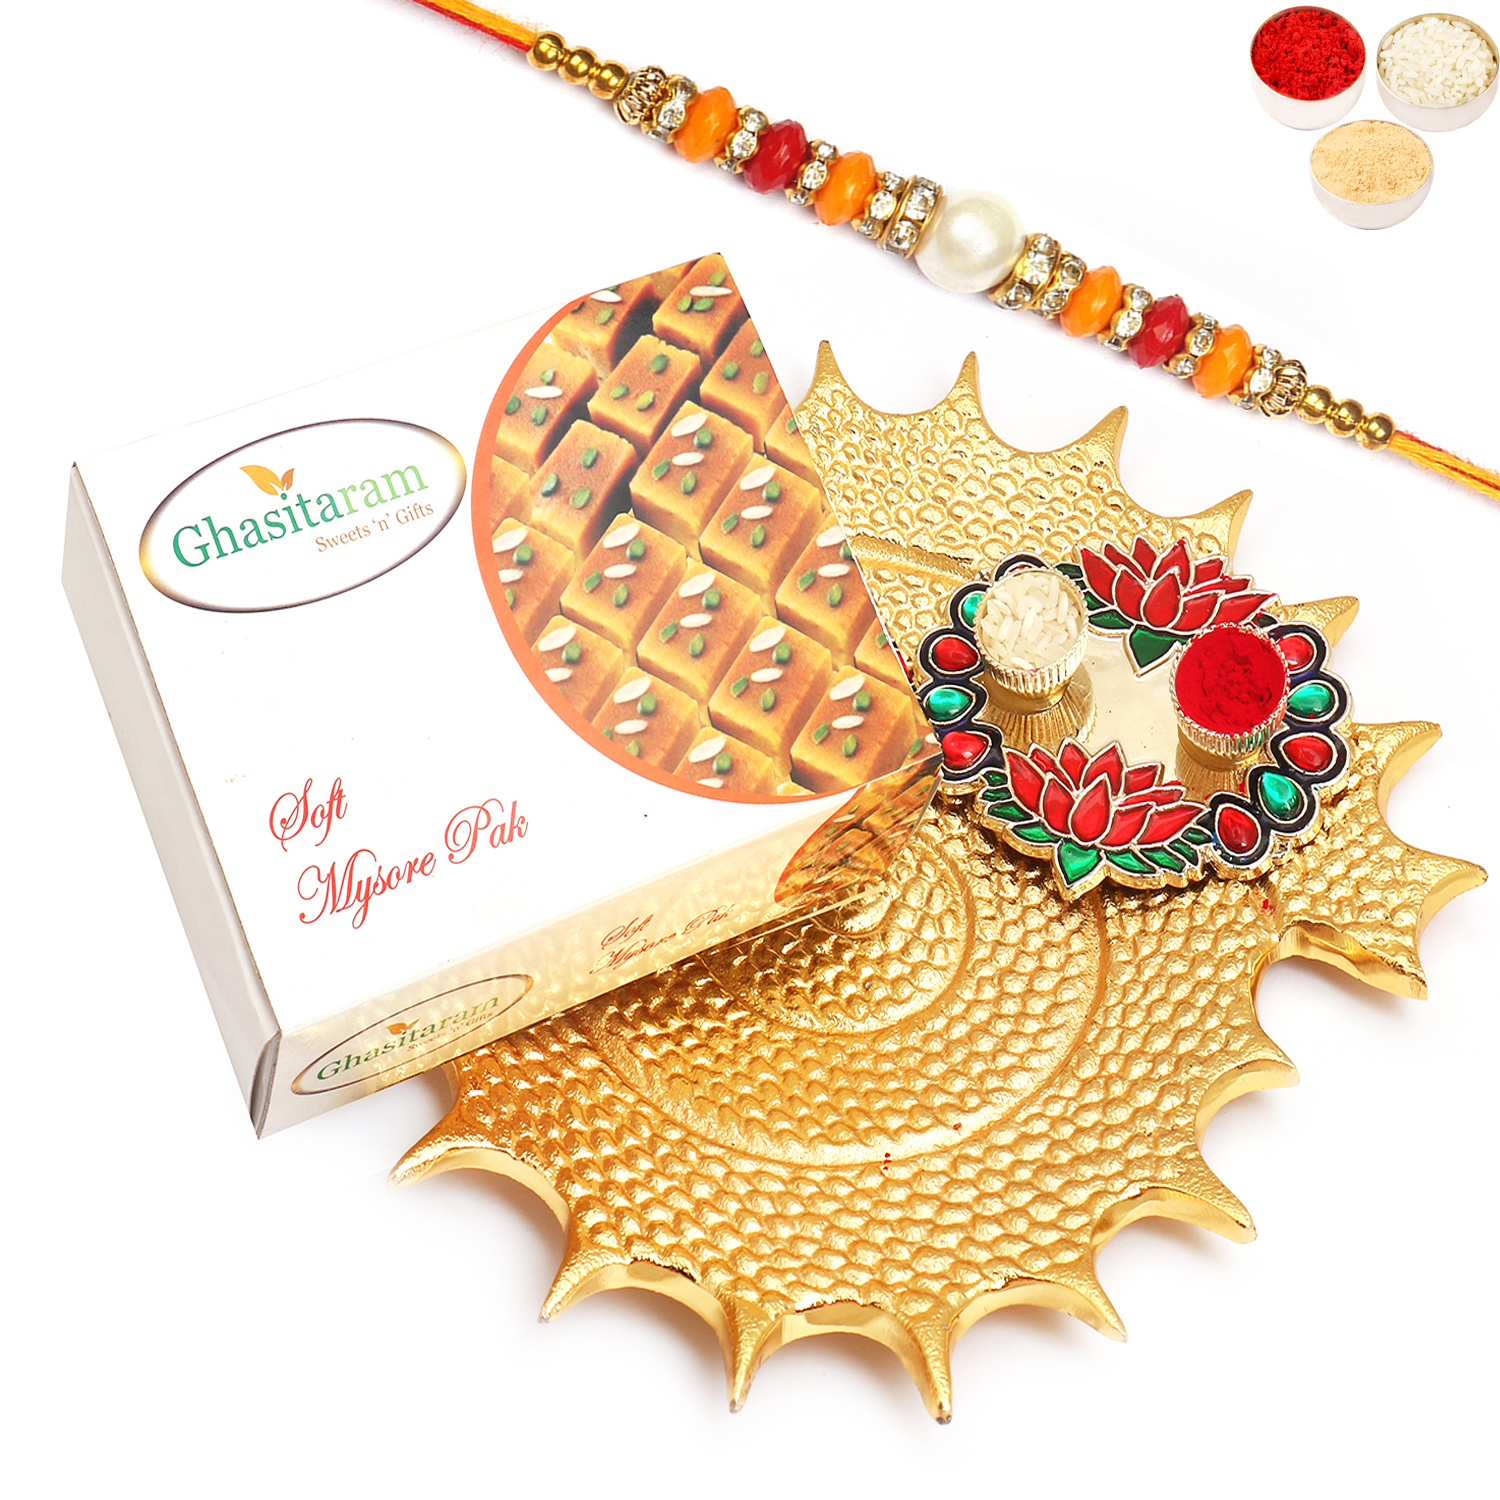 Golden Shell Platter With Mysore Pak and Lotus Pooja Thali with Pearl Diamond Rakhi